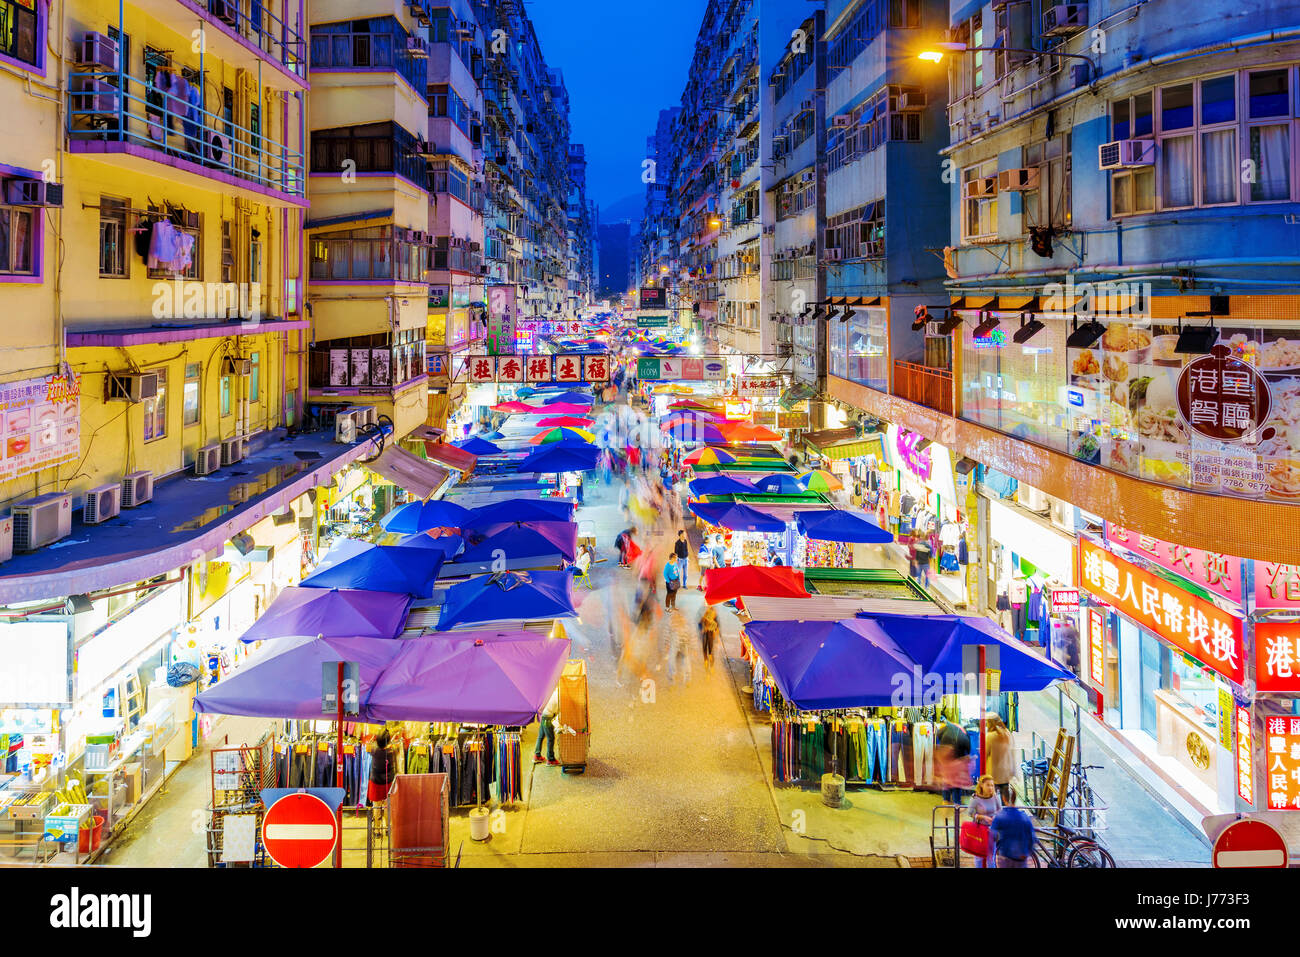 HONG KONG, CHINA - APRIL 24: This is a night view of Fa Yuen street market a popular local market in in the Mong - Stock Image